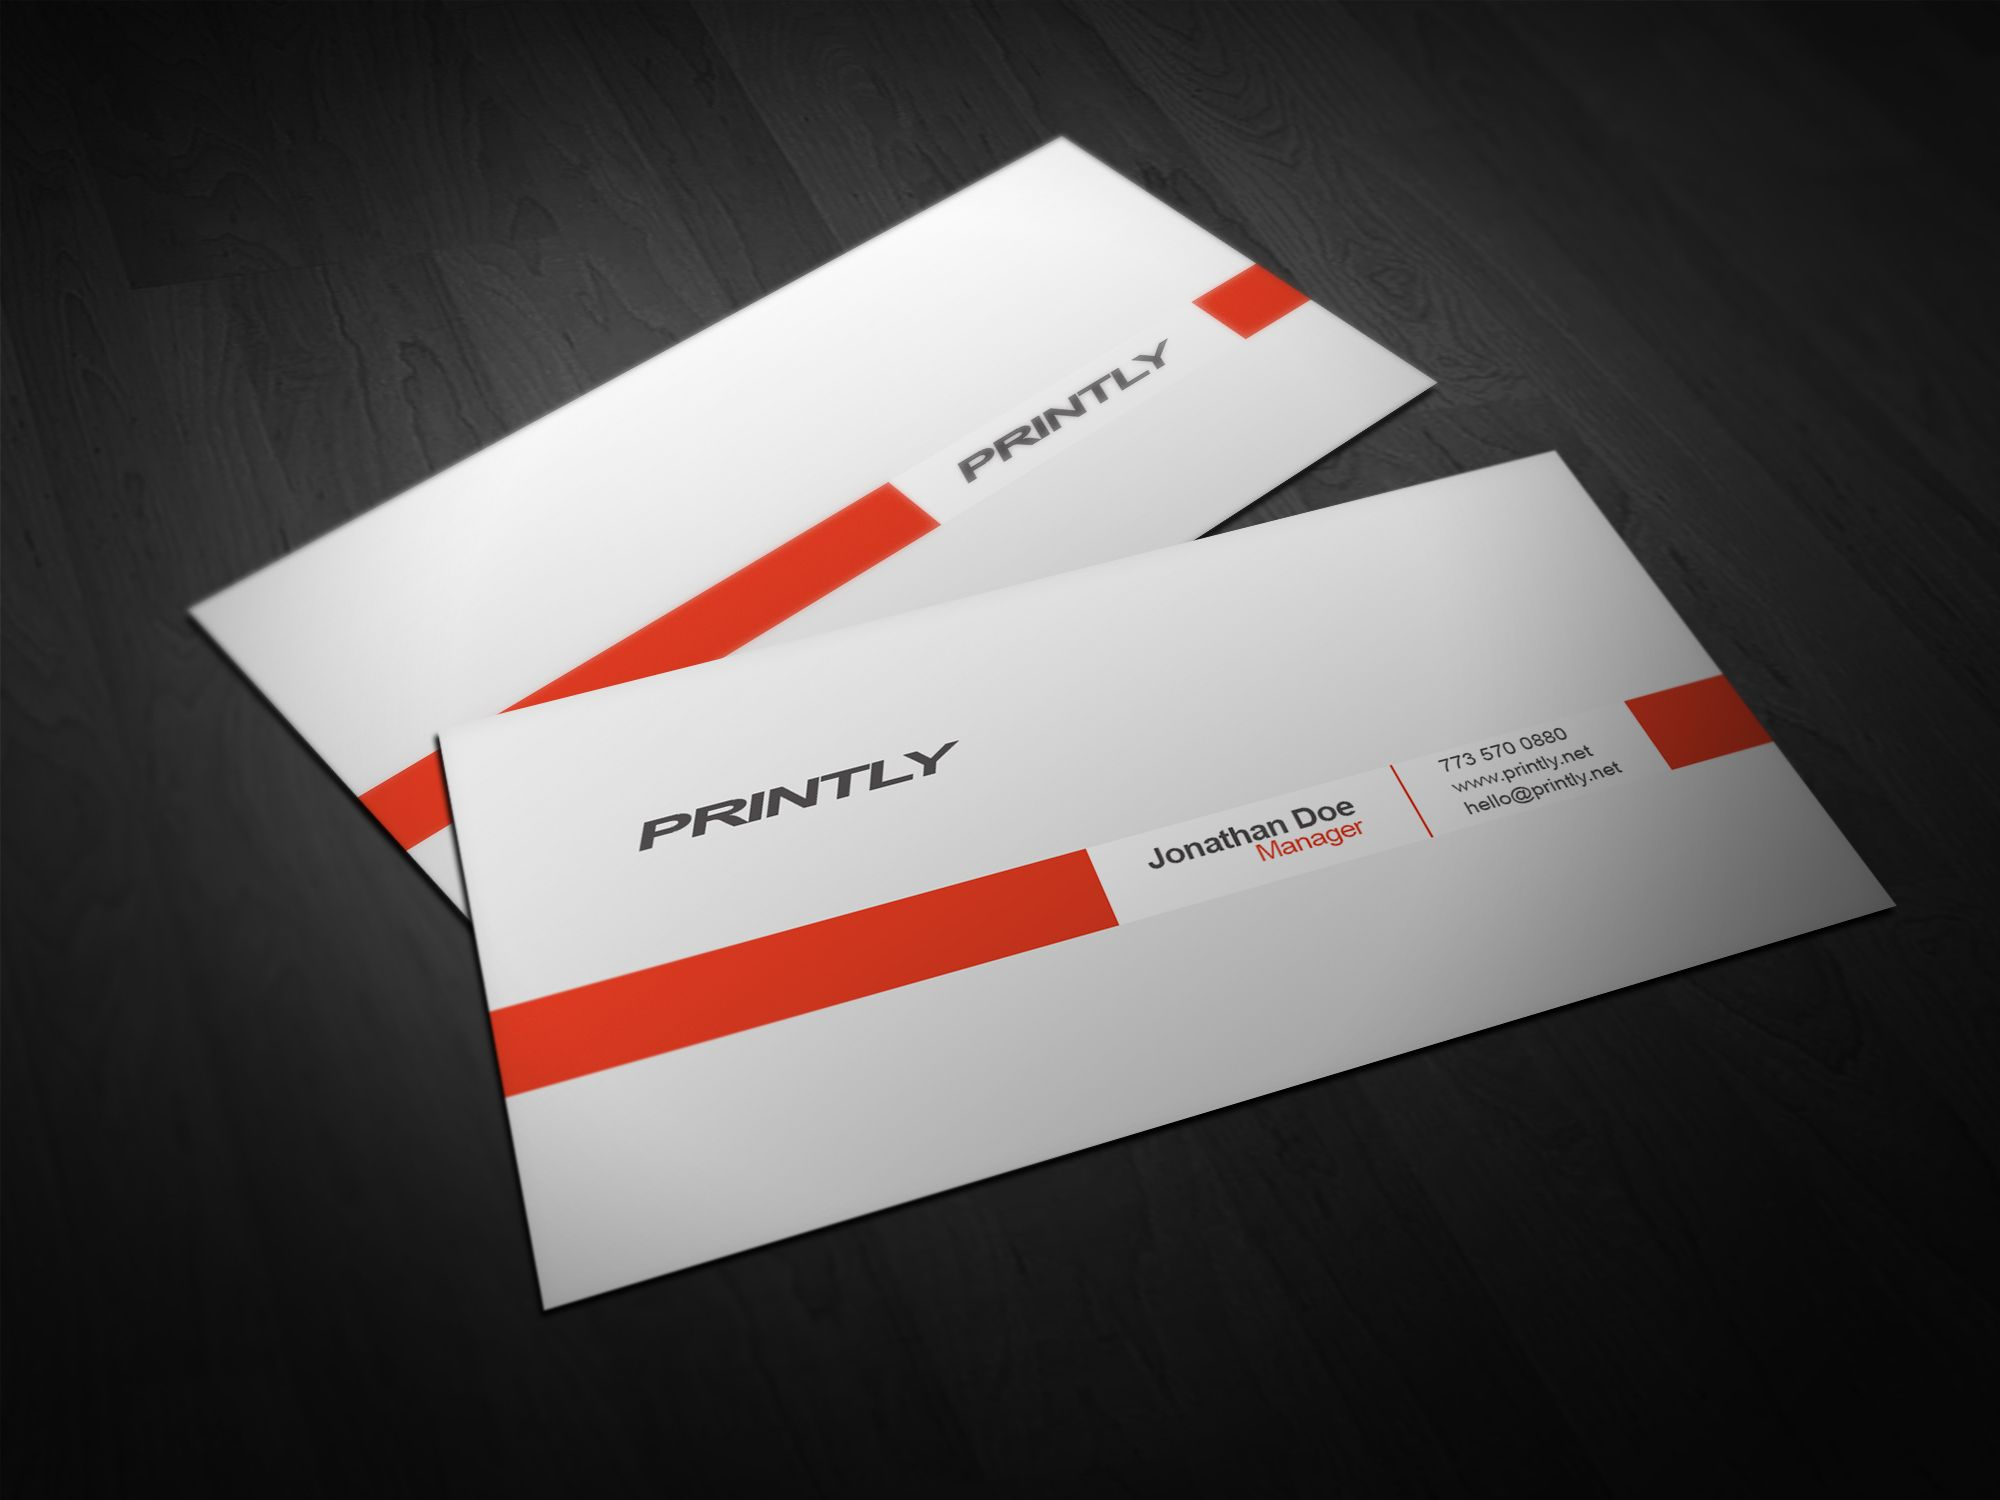 Free printly psd business card template printly design free printly psd business card template printly reheart Gallery